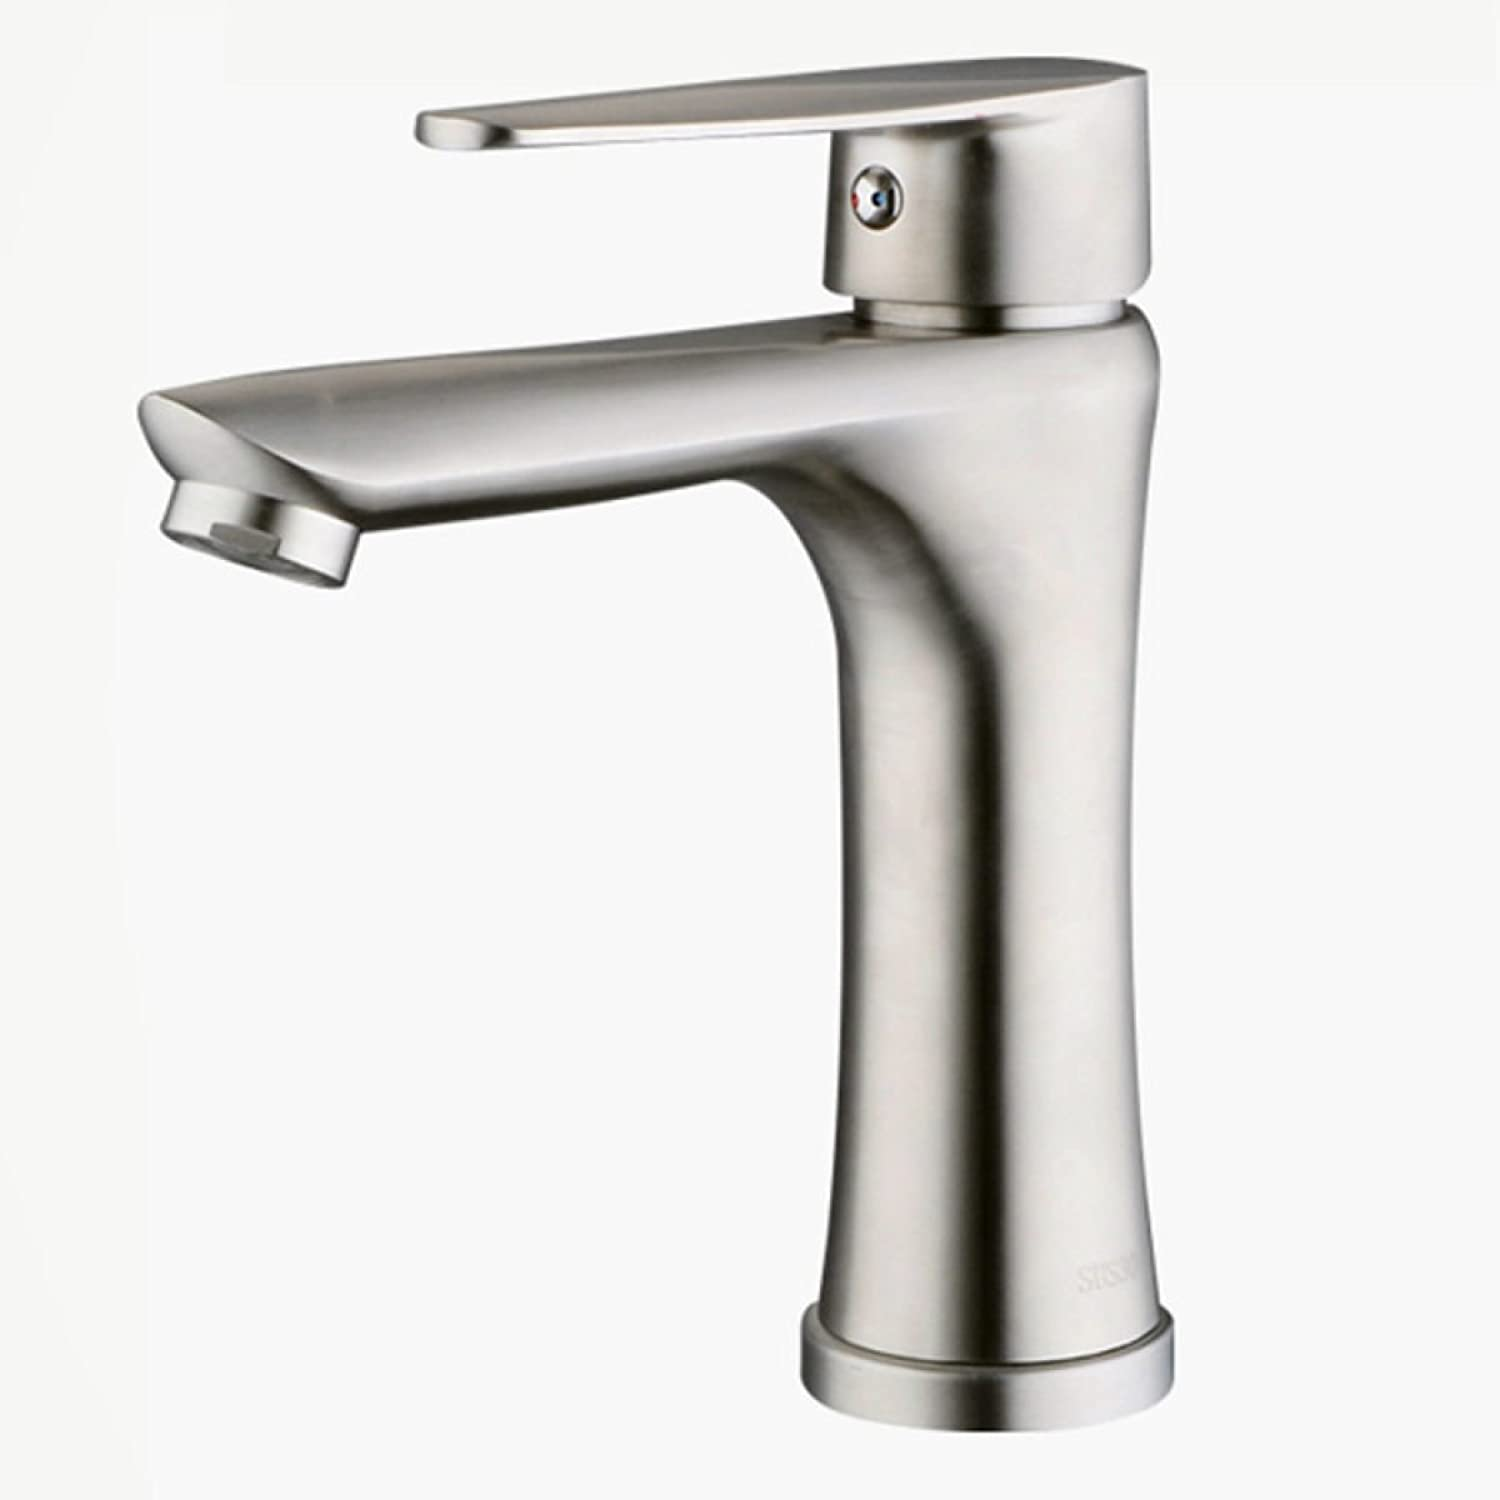 Bathroom Basin Stainless Steel Hot And Cold Mixer Tap Basin Faucet